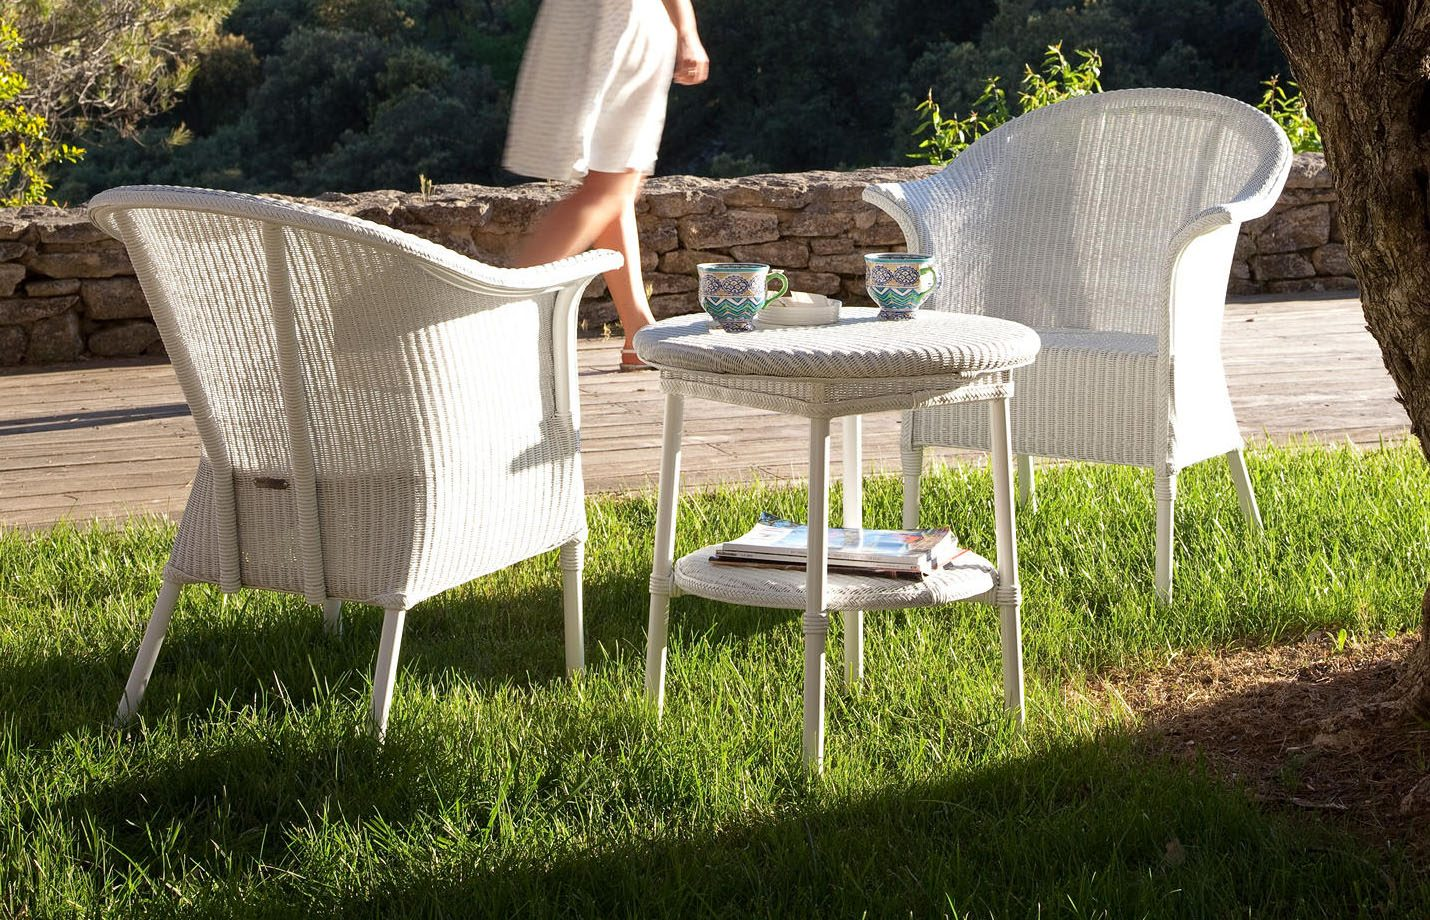 Monte-Carlo-dining-chair-outdoor-LS01